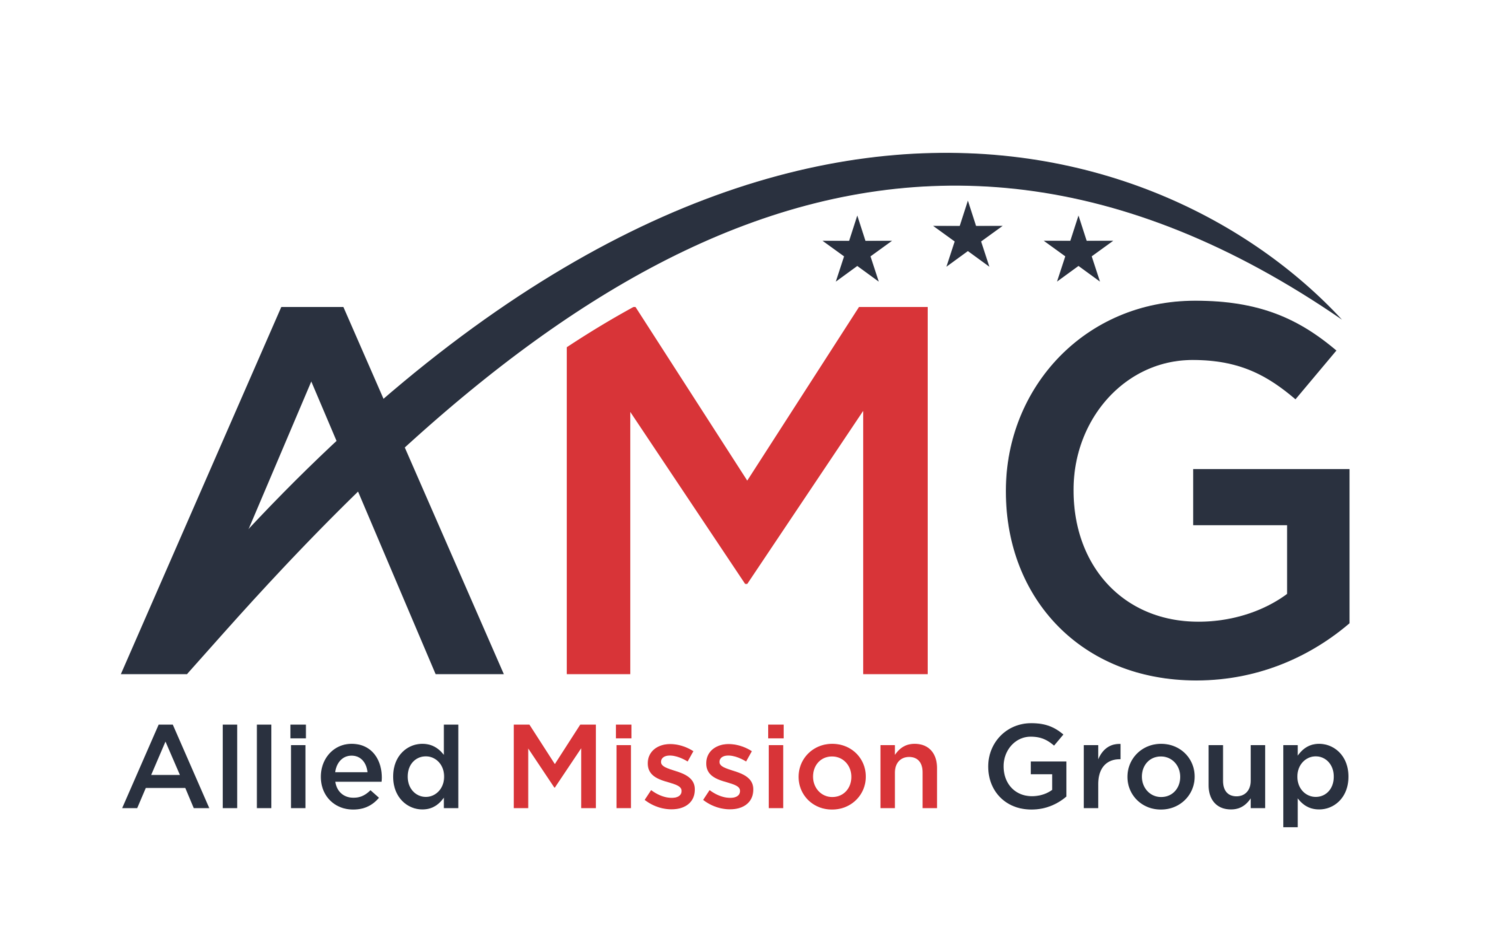 Allied Mission Group